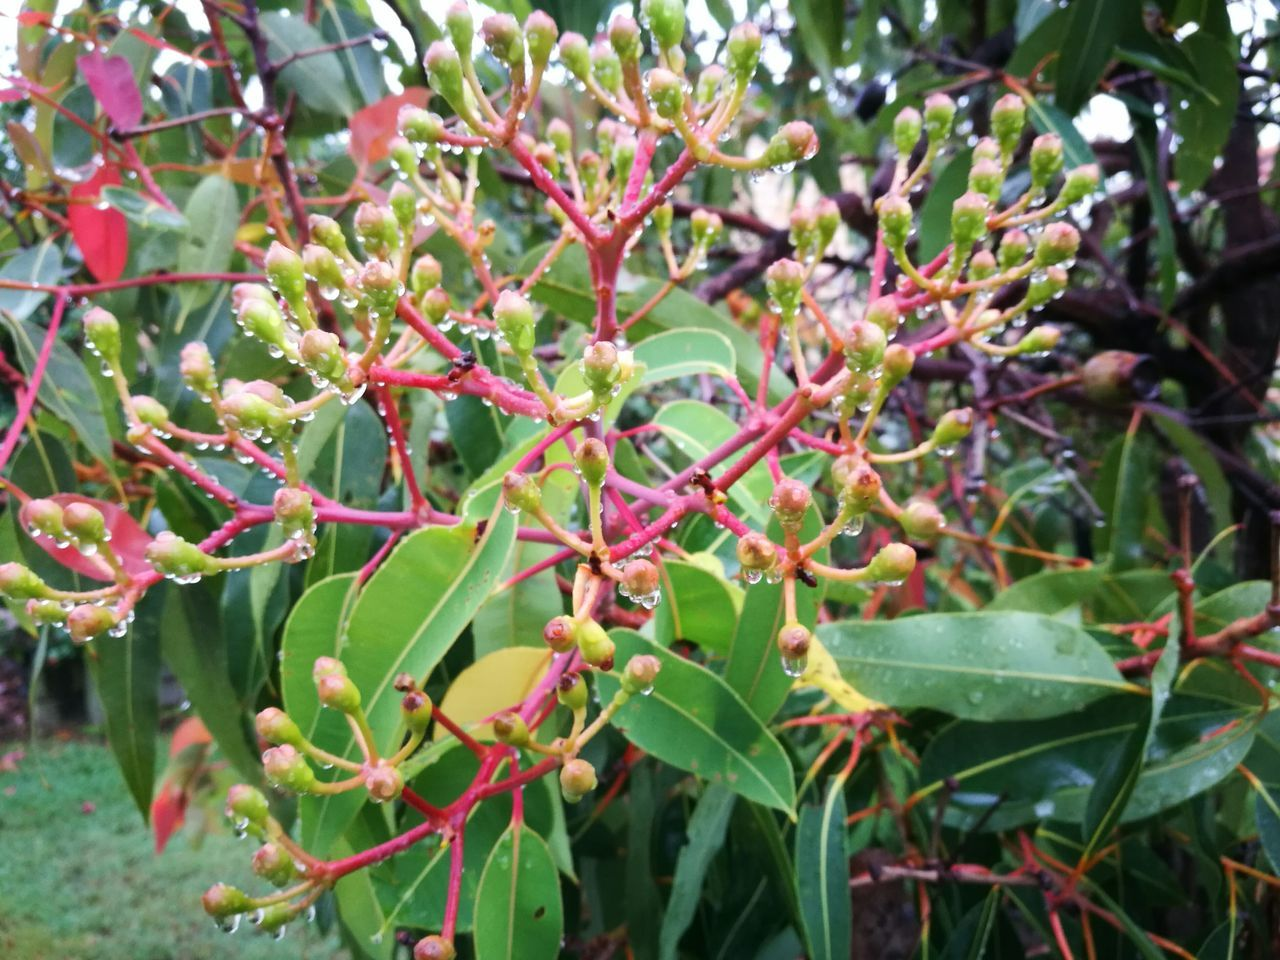 Gum Nut Flower Buds After Rain